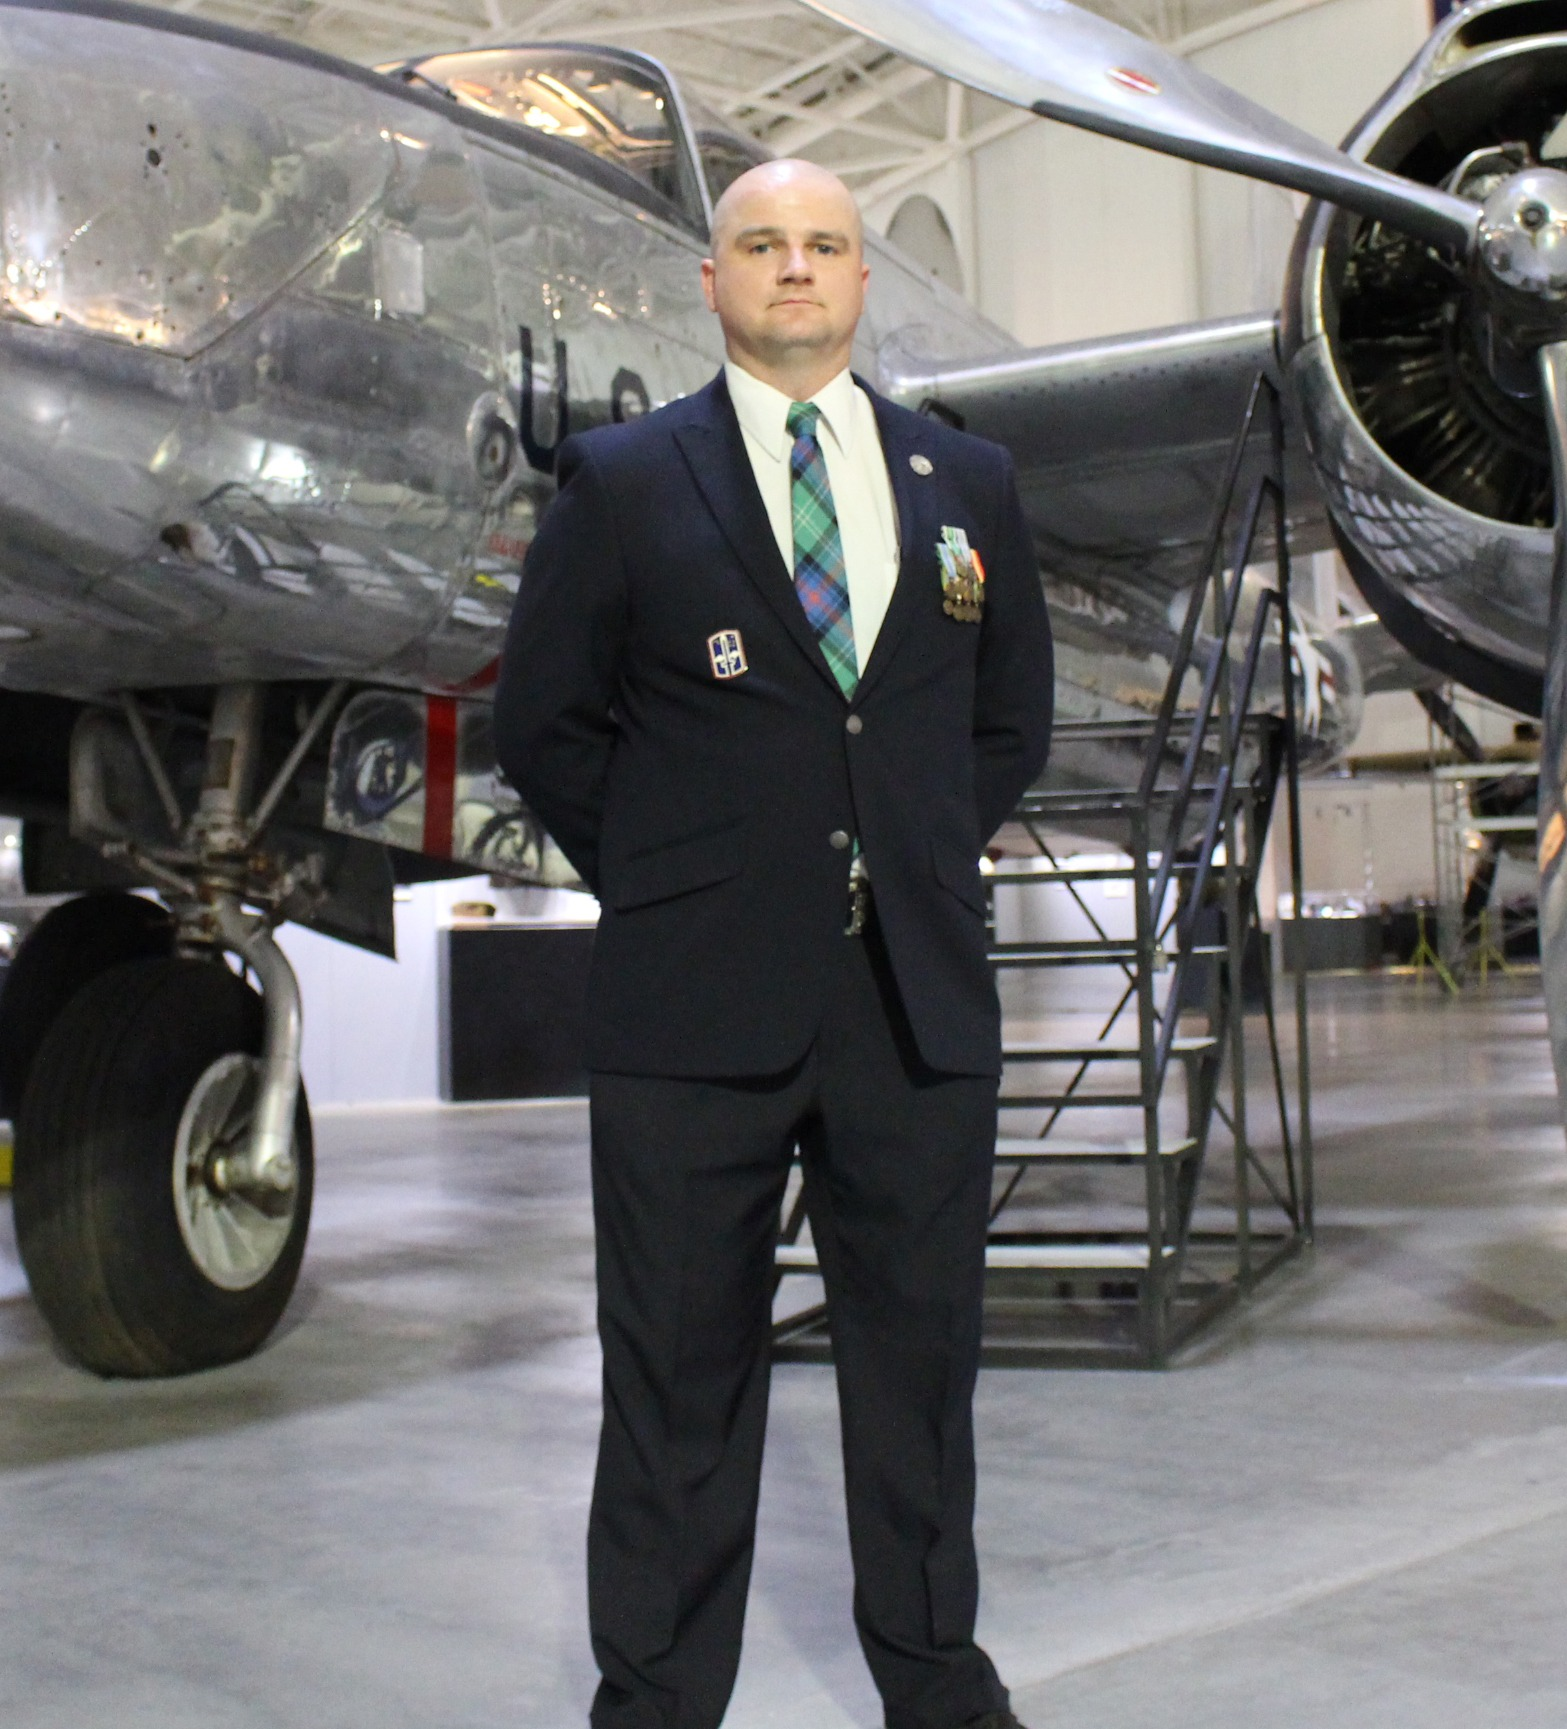 Michael-Sutherland-Air-Force-Former-USAF TACP ROMAD